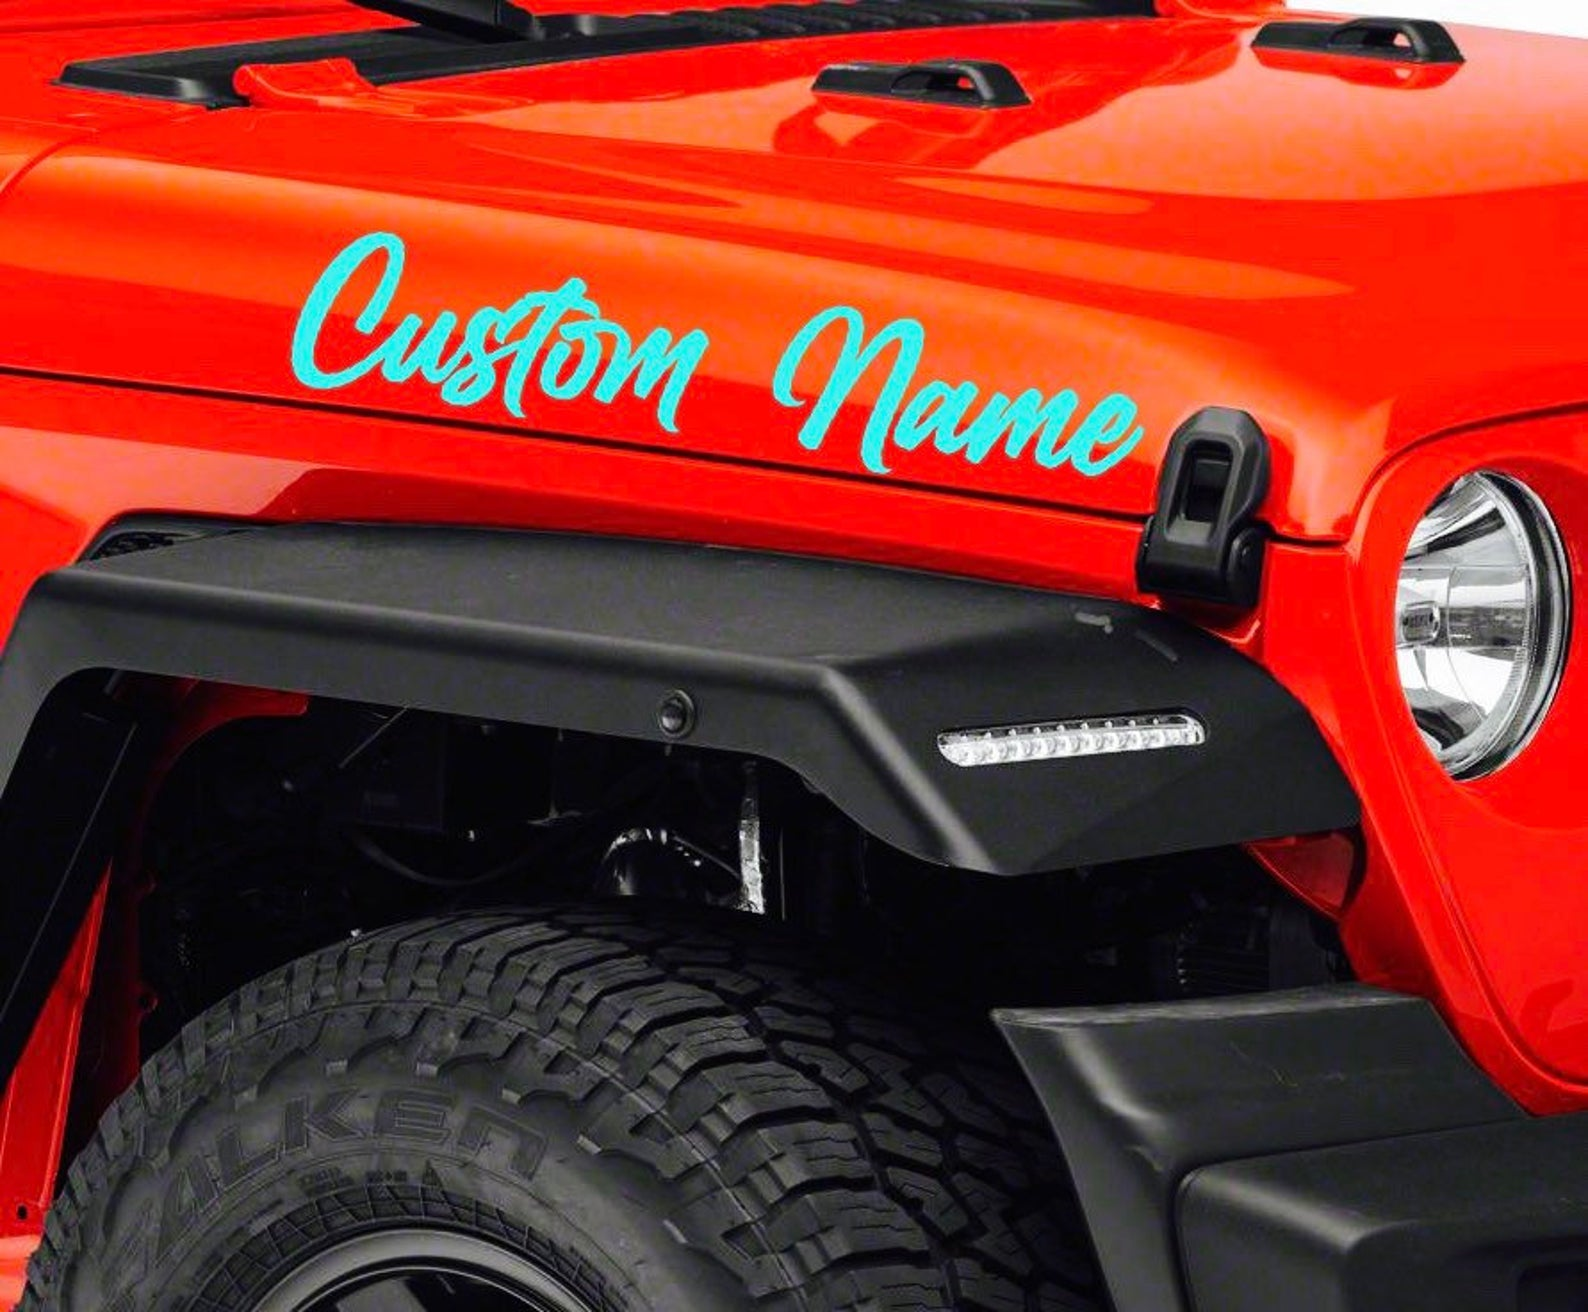 Custom Jeep Name Decals The Jeep Beep Shop